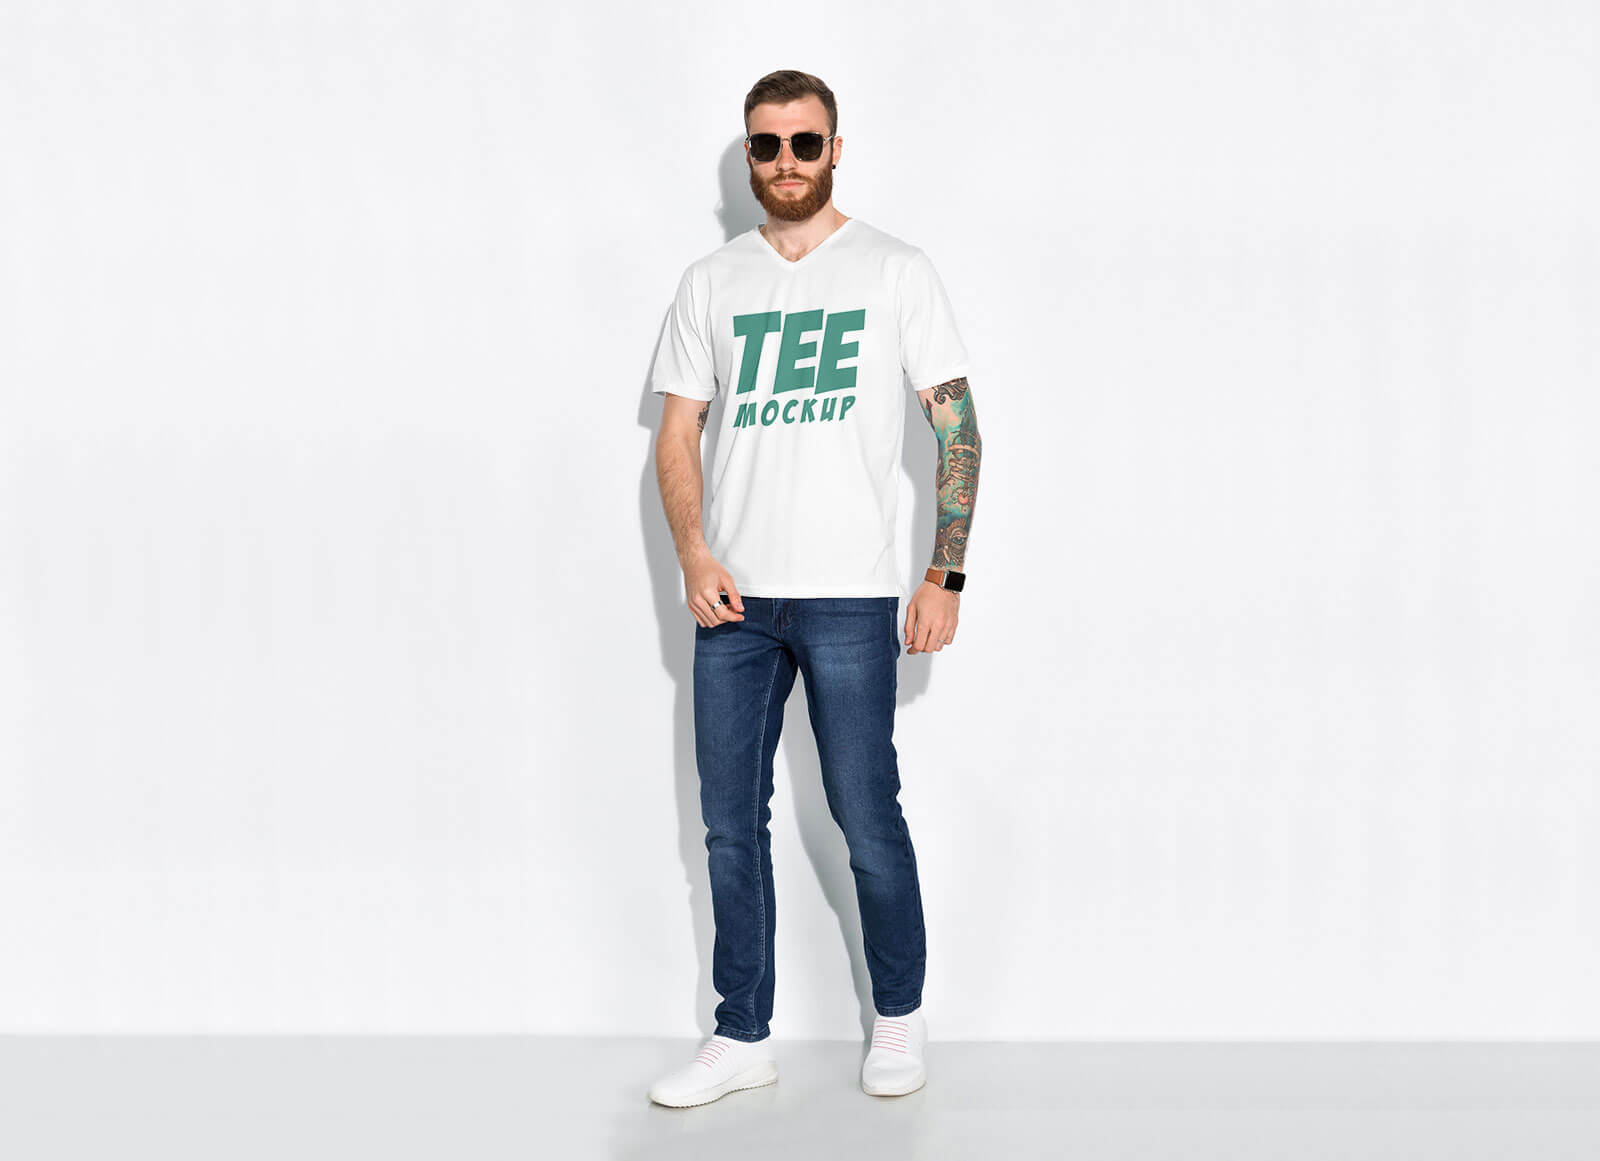 Free-Men's-T-shirt-Mockup-PSD-for-Graphic-Tees